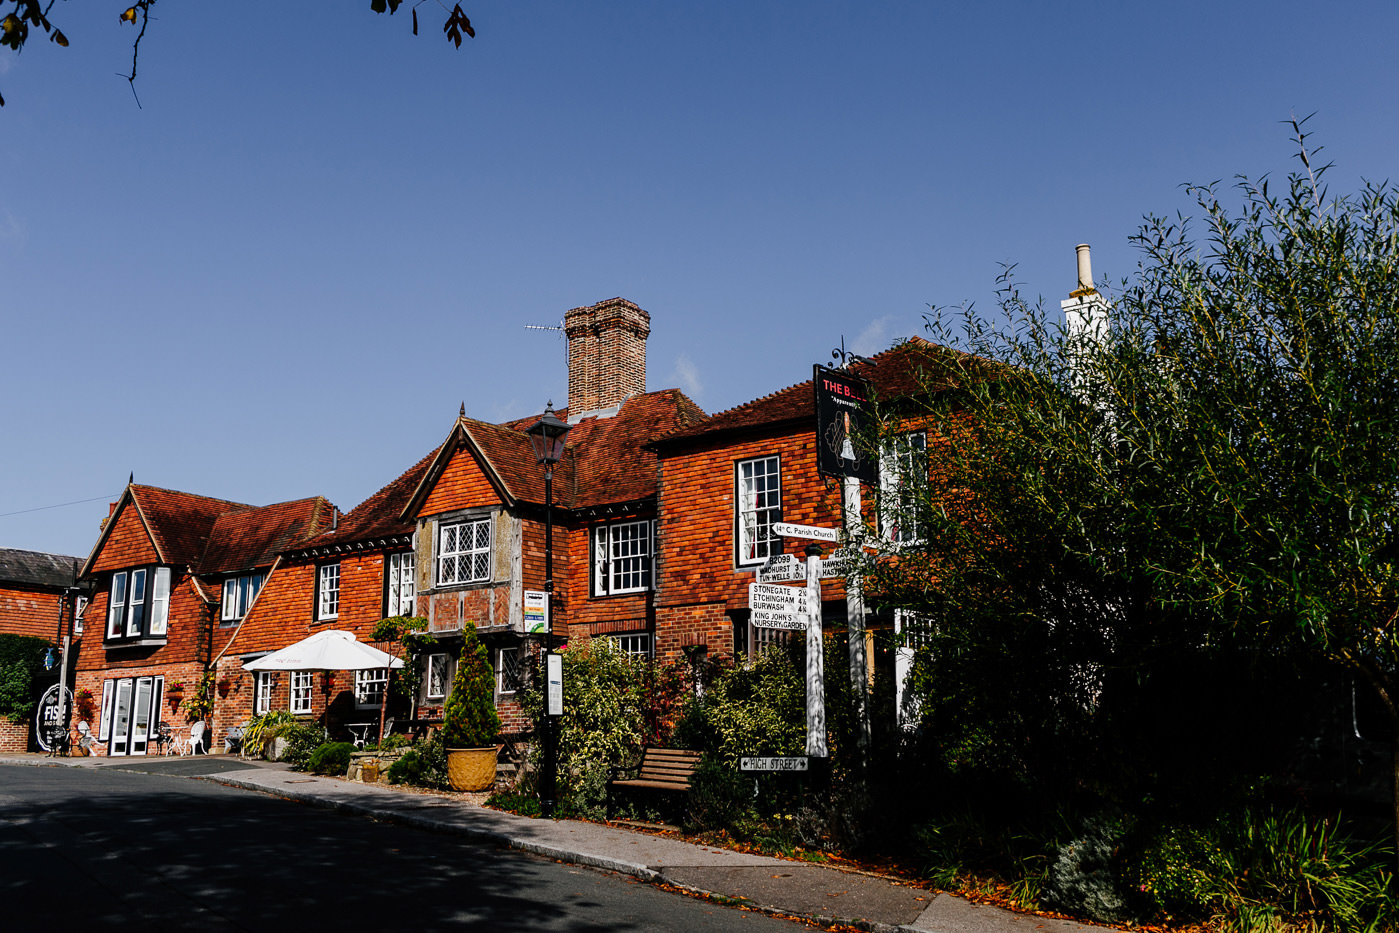 The-bell-in-Ticehurst-pub-kent-wedding-photographer-London-Epic-Love-Story-001